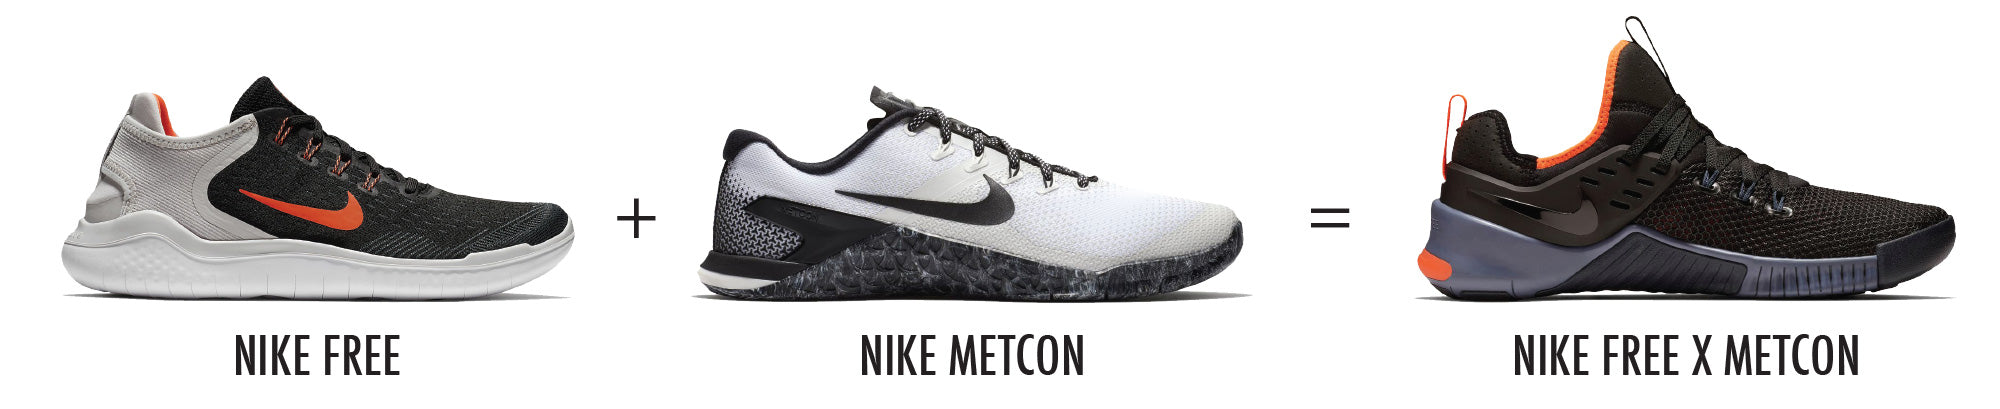 So whats different between the Nike Metcon and the Free X Metcon  For  starters 976555899